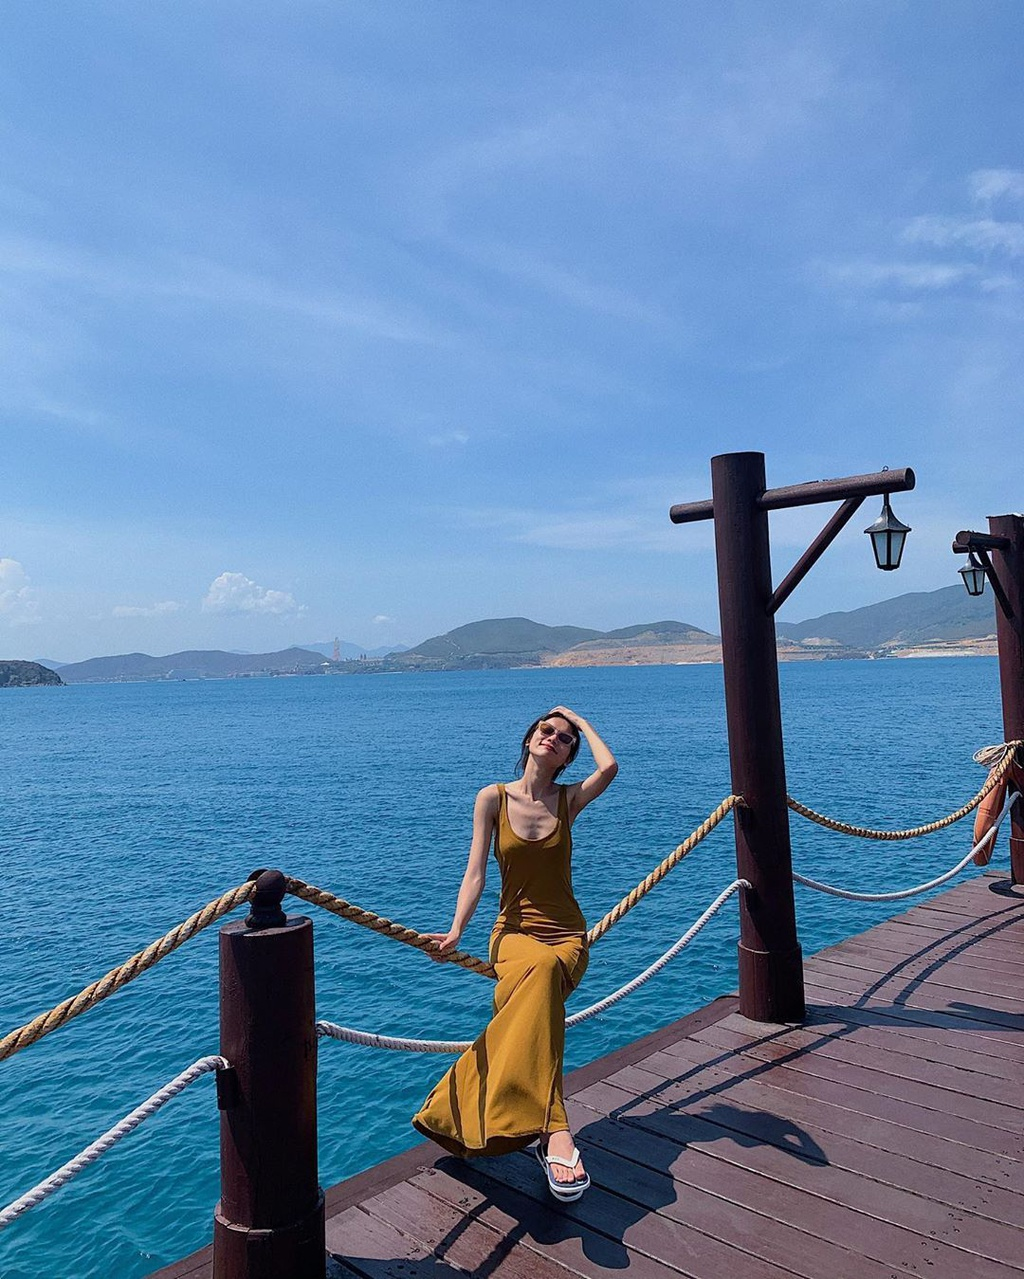 alluring wooden bridges amidst blue sea in vietnams famous tourism hub